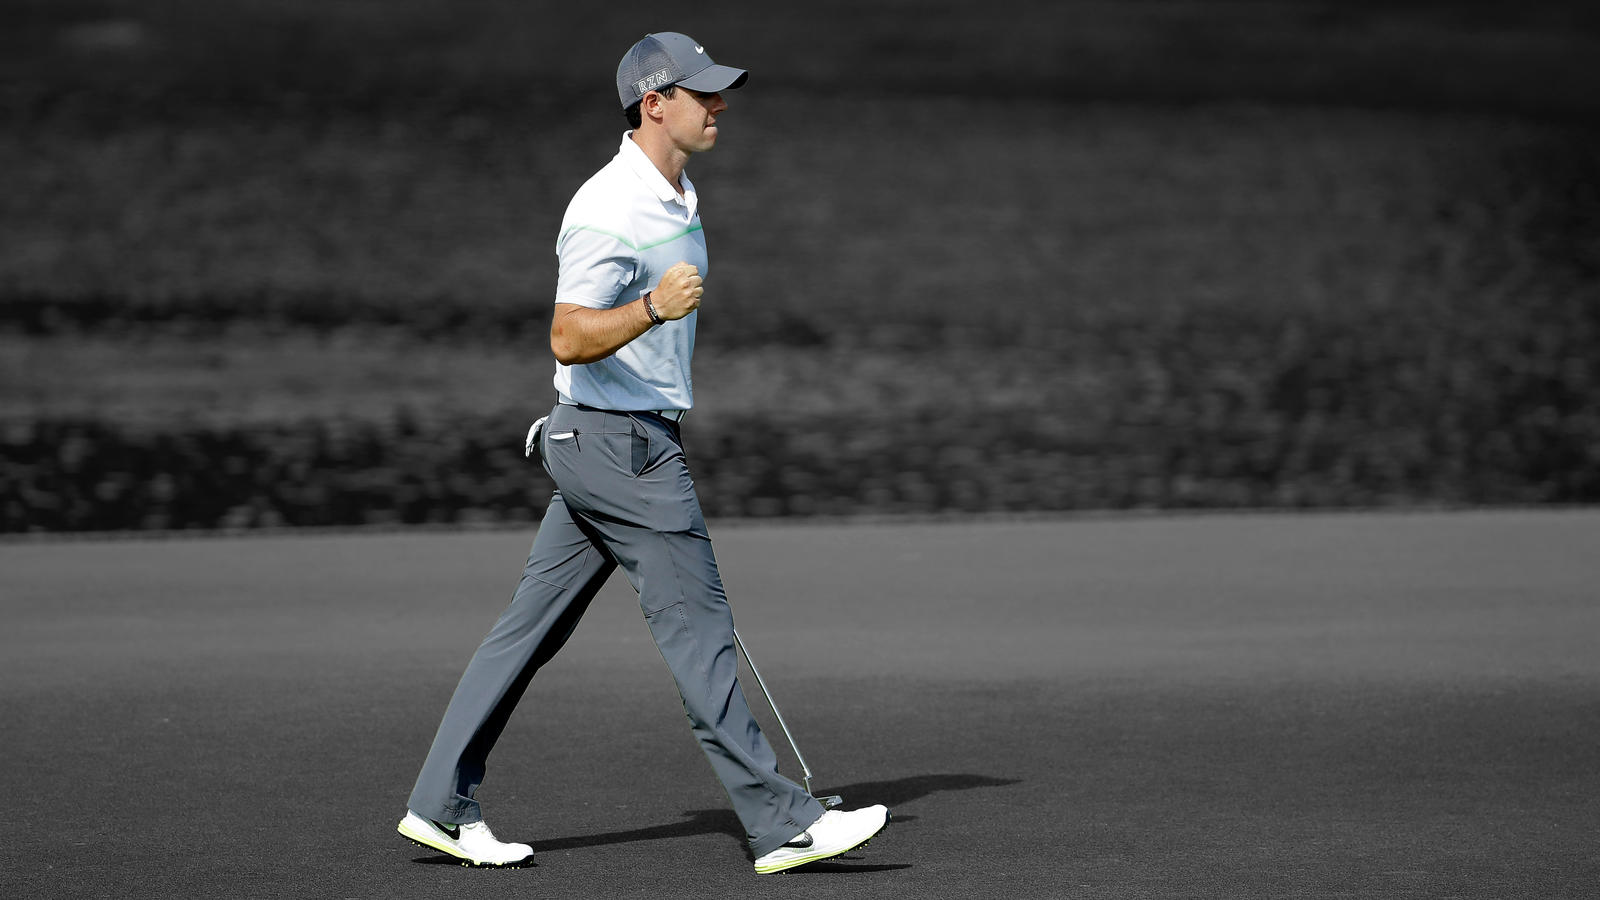 Five Years Removed From His First Career PGA Tour Win On The Very Same Course Nike Golf Athlete Rory McIlroy Dominated Field For Second Wells Fargo